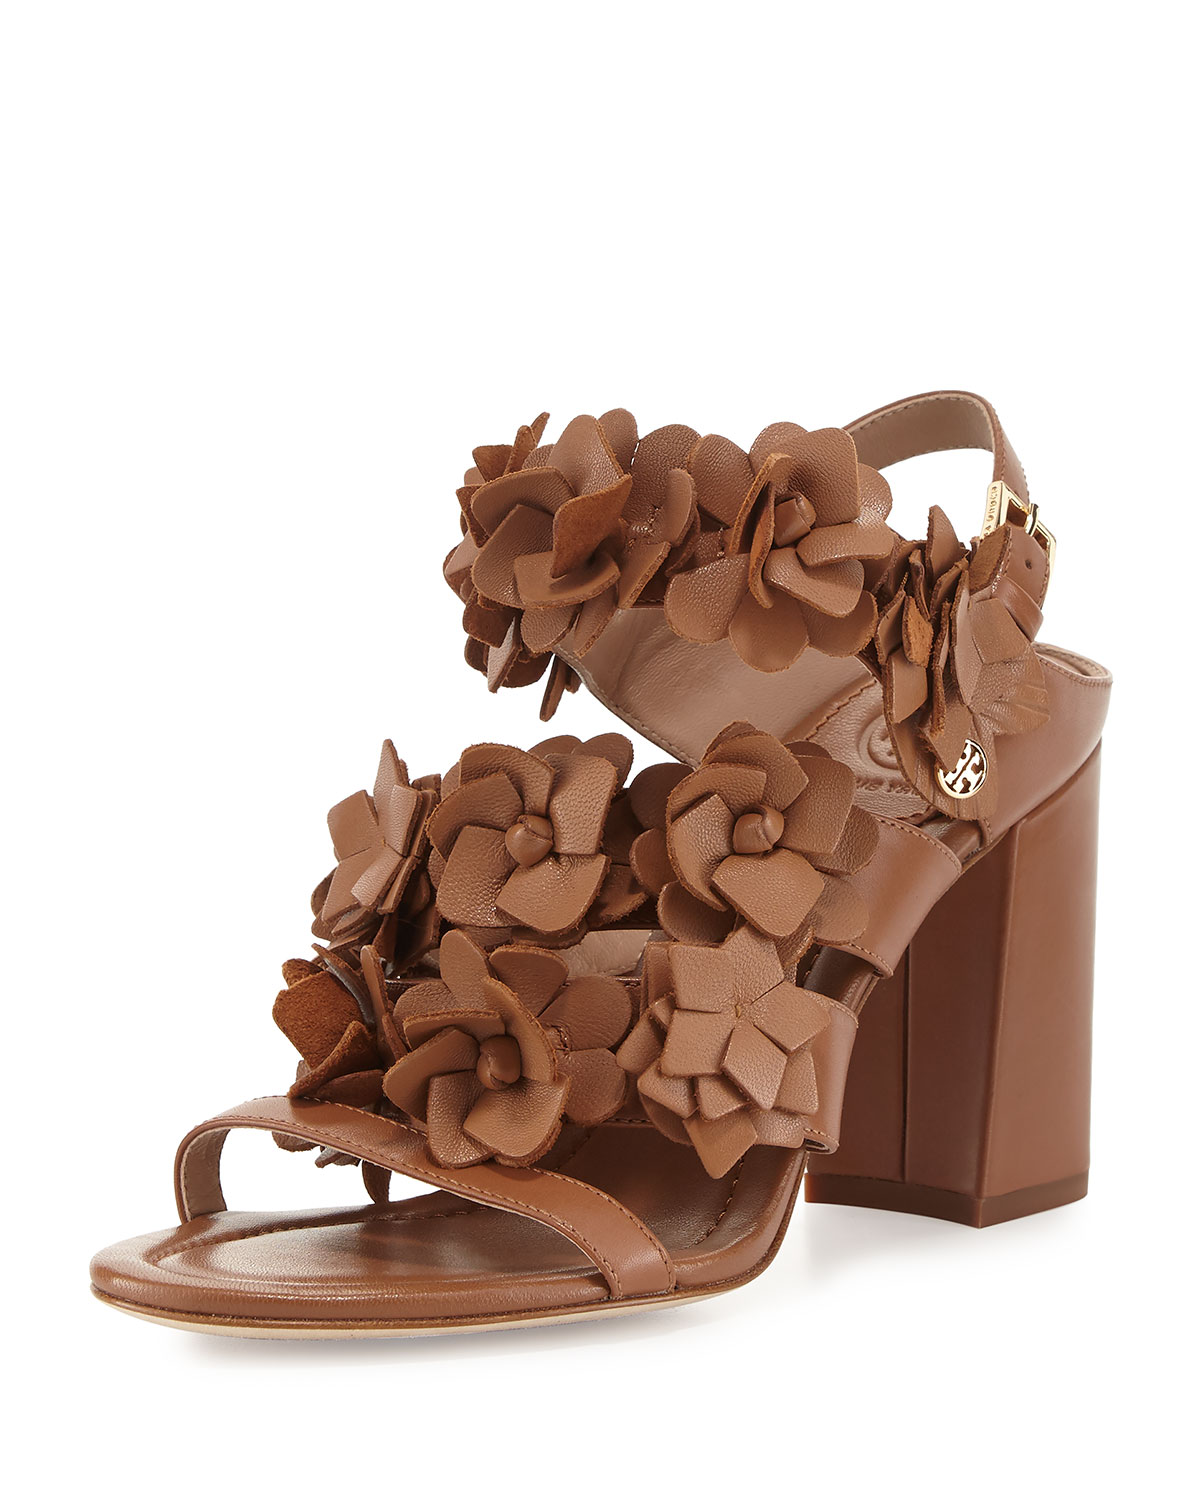 d3a393189 Tory Burch Blossom Leather 65mm Sandal